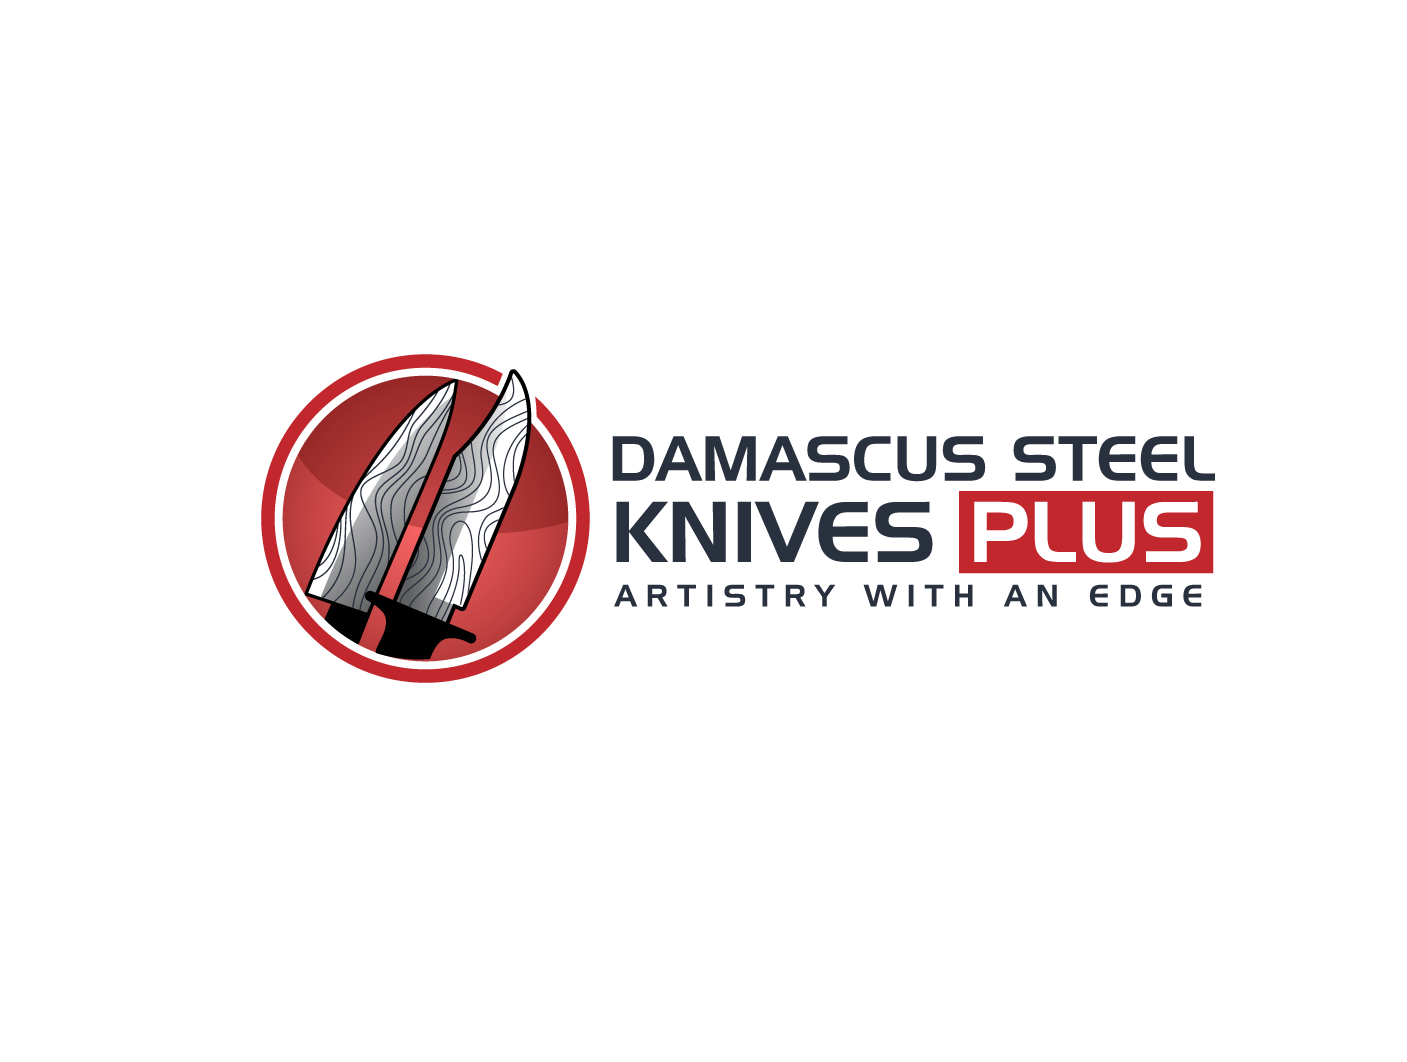 Create a winning logo design for online ecommerce site Damascus Steel Knives PLUS